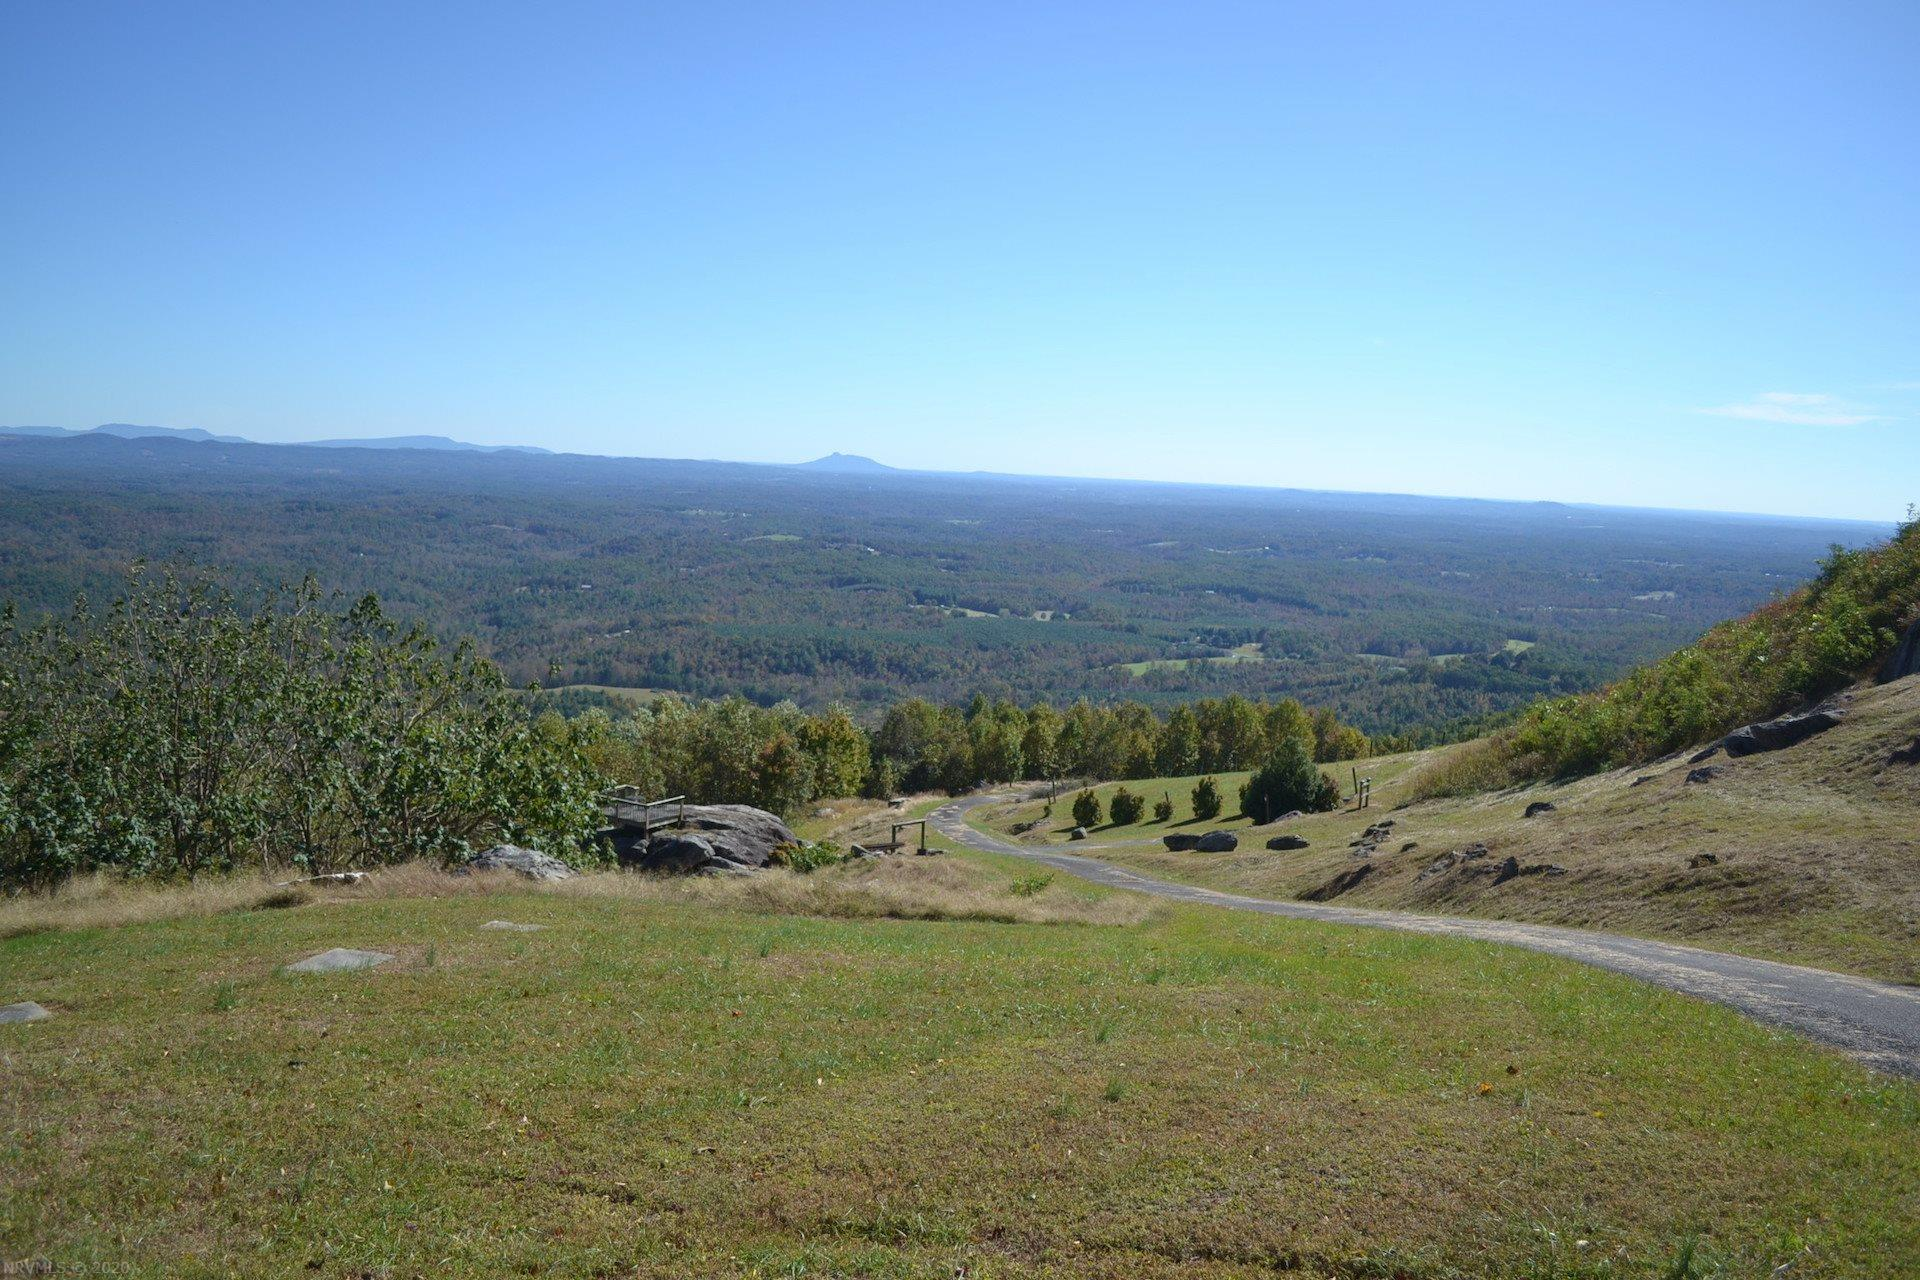 If you've ever wanted that million dollar view, you can find it right here! Build your mountain dream home here and you can own the 20+ mile view across the valley to the distinct peak of Pilot Mountain. This offering includes 18+ acres, a paved drive, a small stream, a spring and small pond, a stone brick oven, two elevated platforms for camping, entertaining, and taking in the views, and a shelter that is ready for two bathrooms to be tied to your new water system. With room to stretch your wings, the spring, and the view, this property is a rare opportunity indeed. Call for your appointment today.